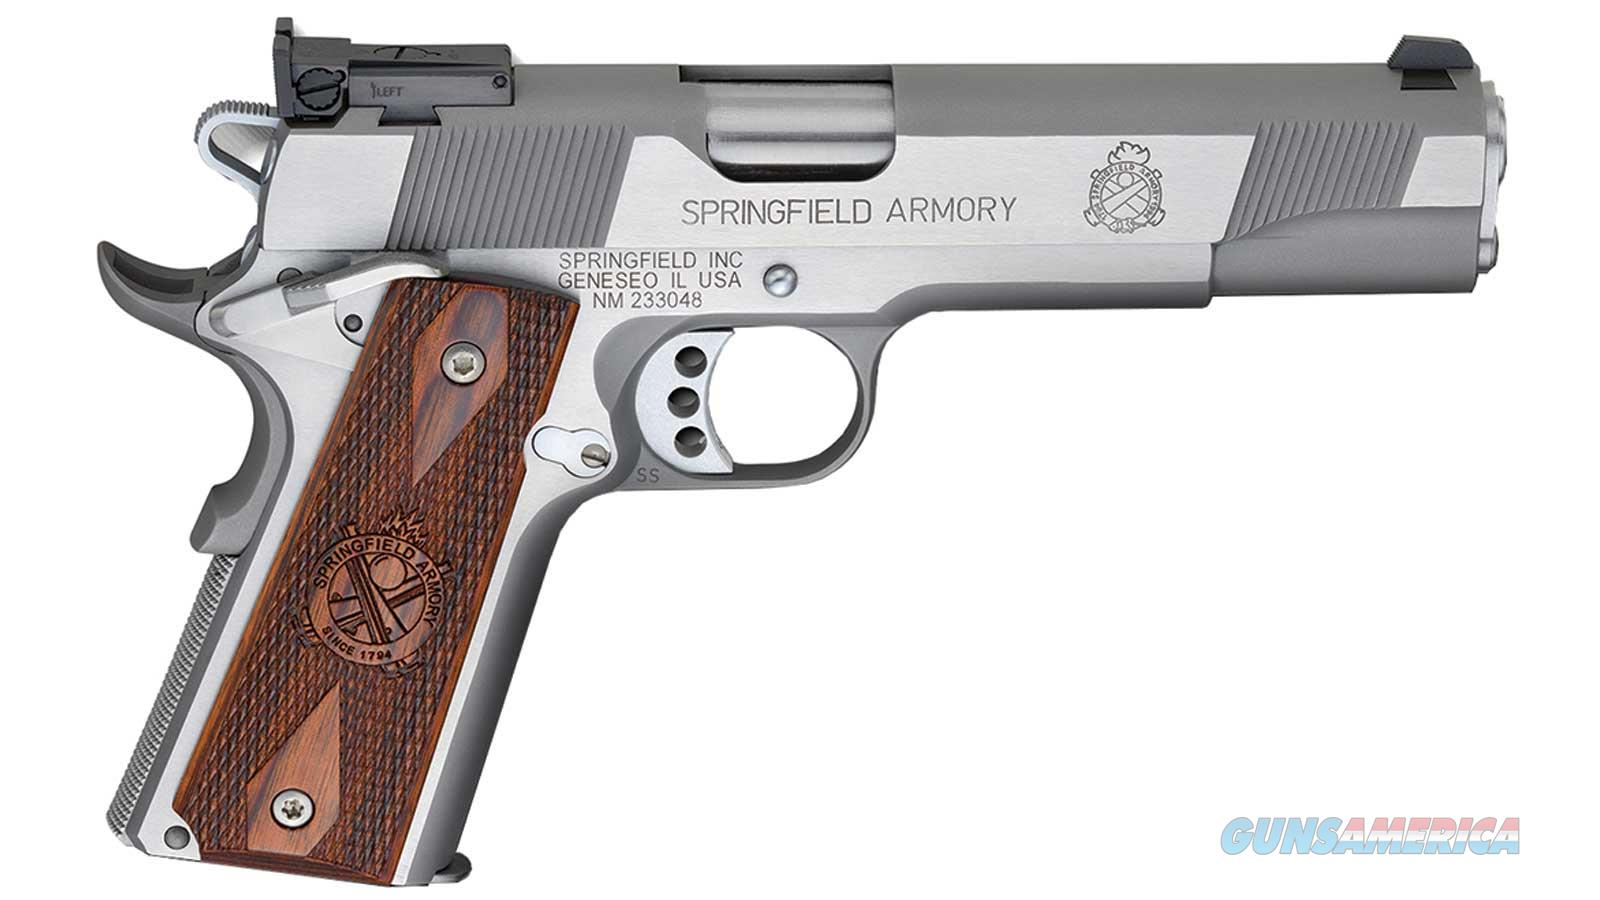 Springfield Armory 1911 Target 45Acp 5 Ss As Loaded Ca Legal PI9132LCA  Guns > Pistols > S Misc Pistols